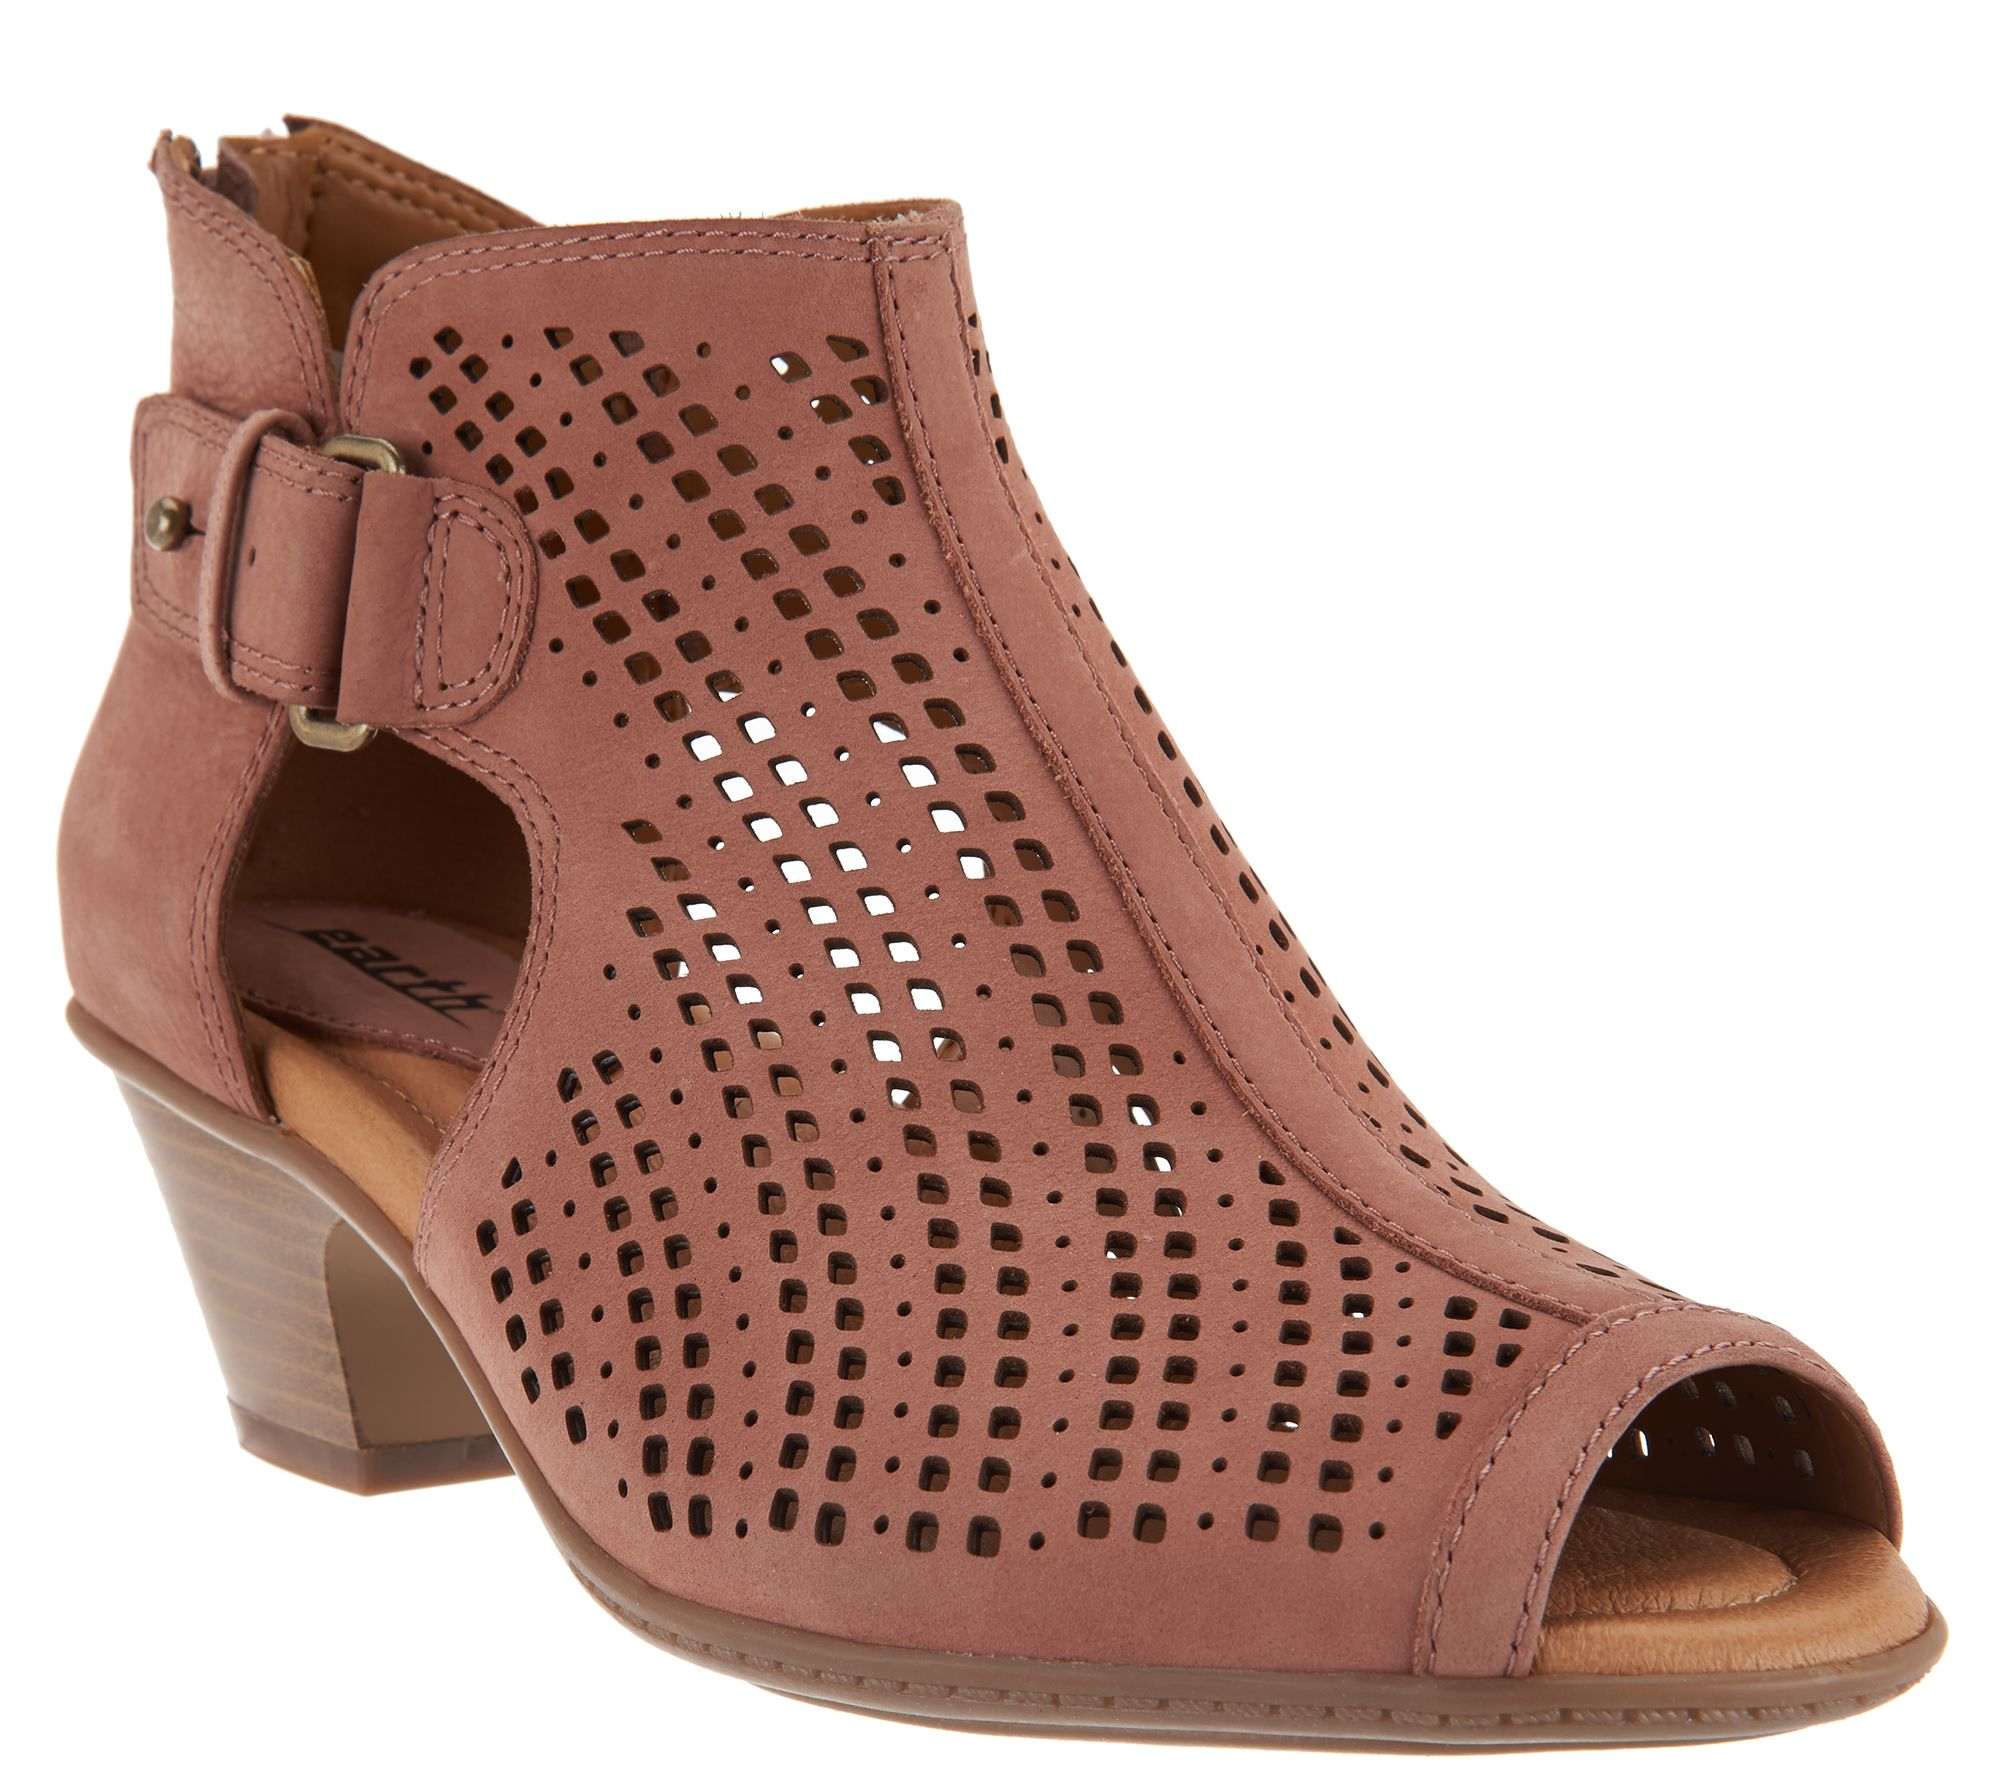 Womens sandals near me